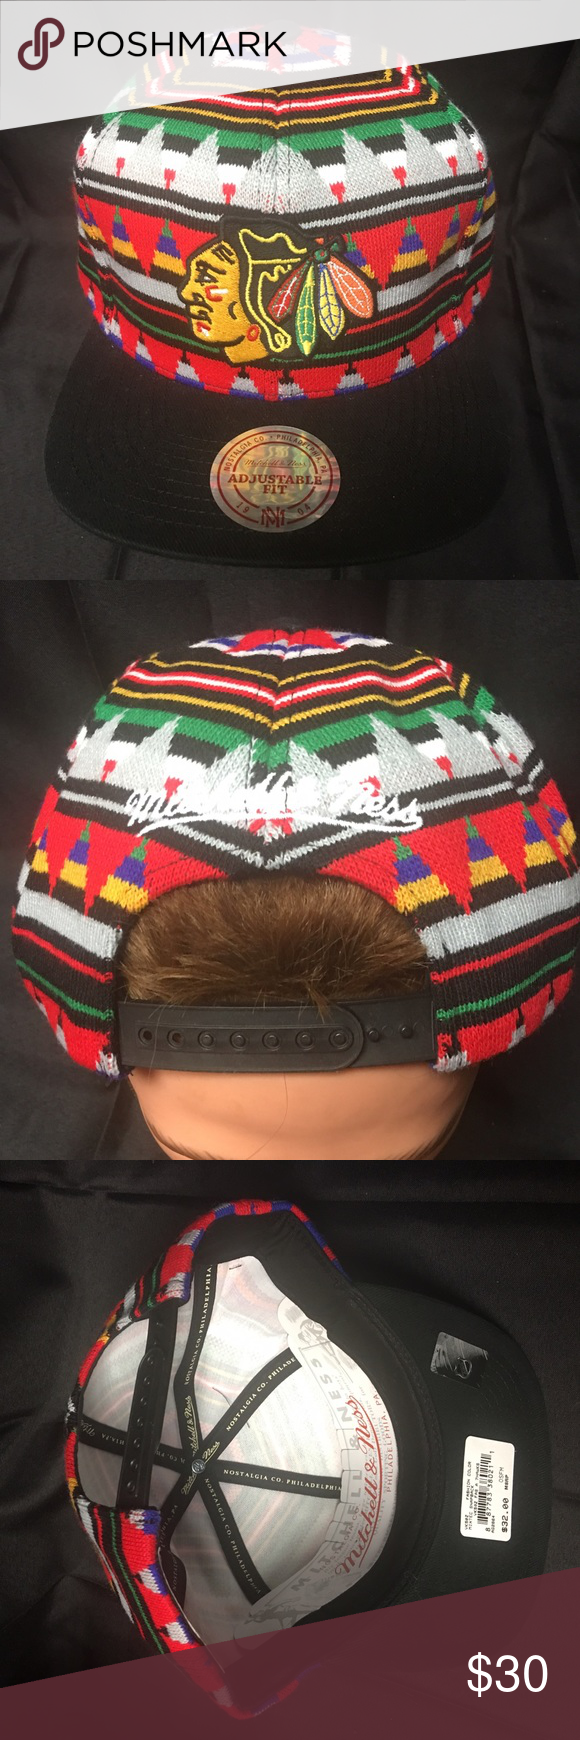 83c5ee6b0c1bf Mitchell   Ness Chicago Blackhawks Aztec Snapback NWT Mitchell   Ness  Chicago Blackhawks Aztec Patterned Snapback Hat. Purchased in Flagship  Store.